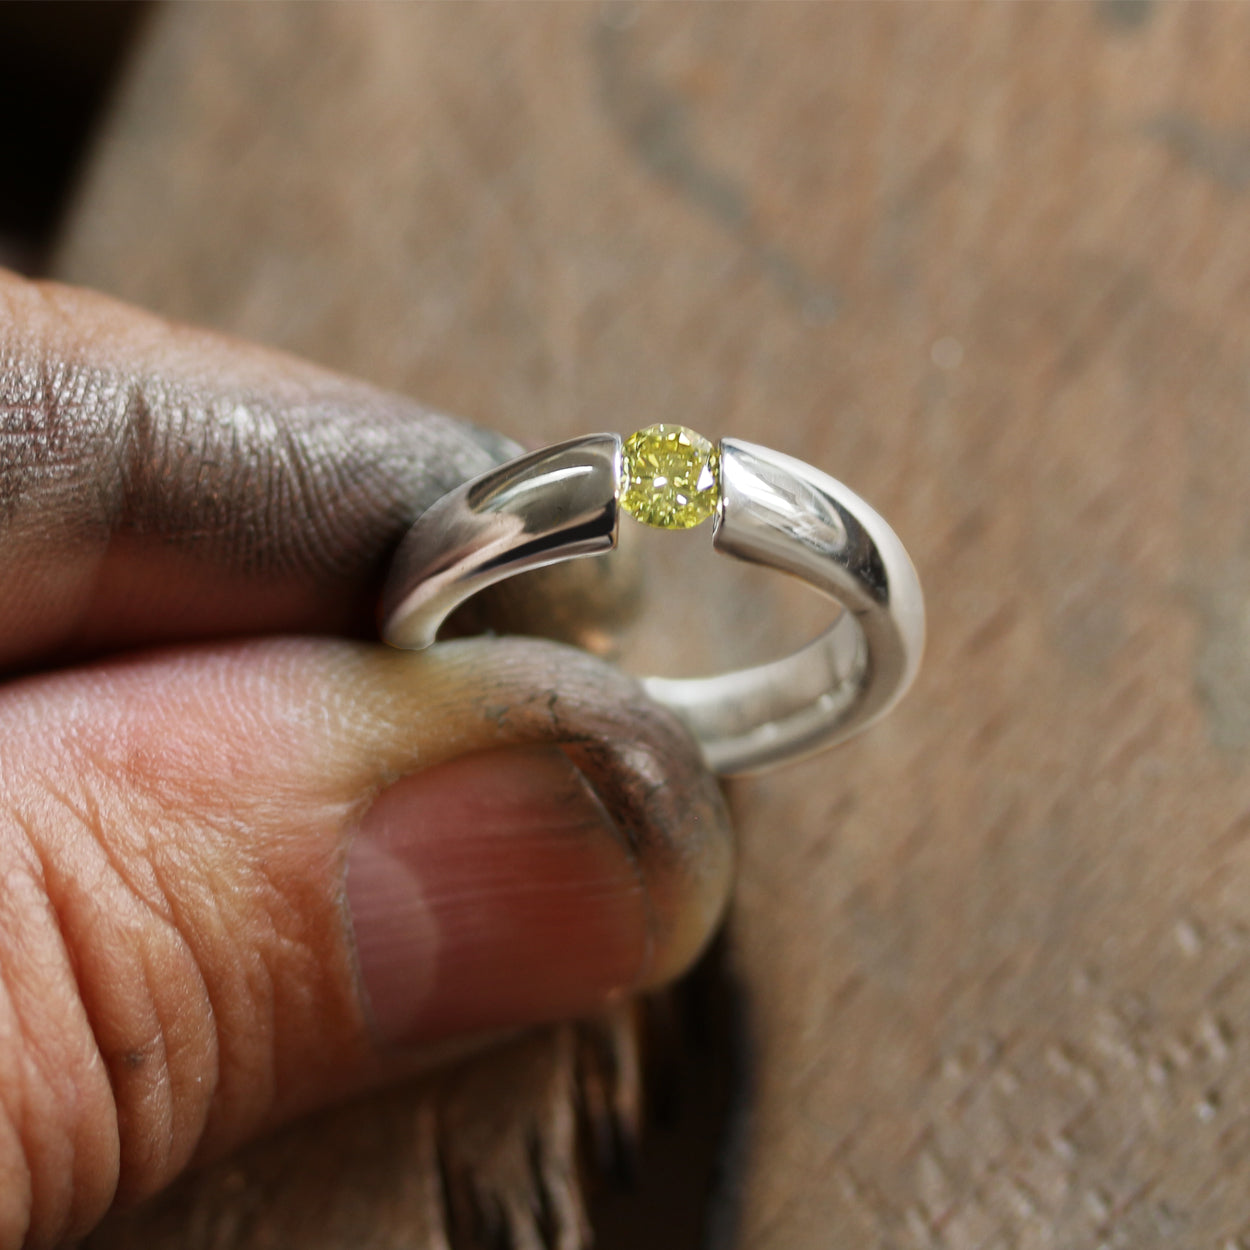 Tension Set Engagement Ring by Luke Rose in Australia